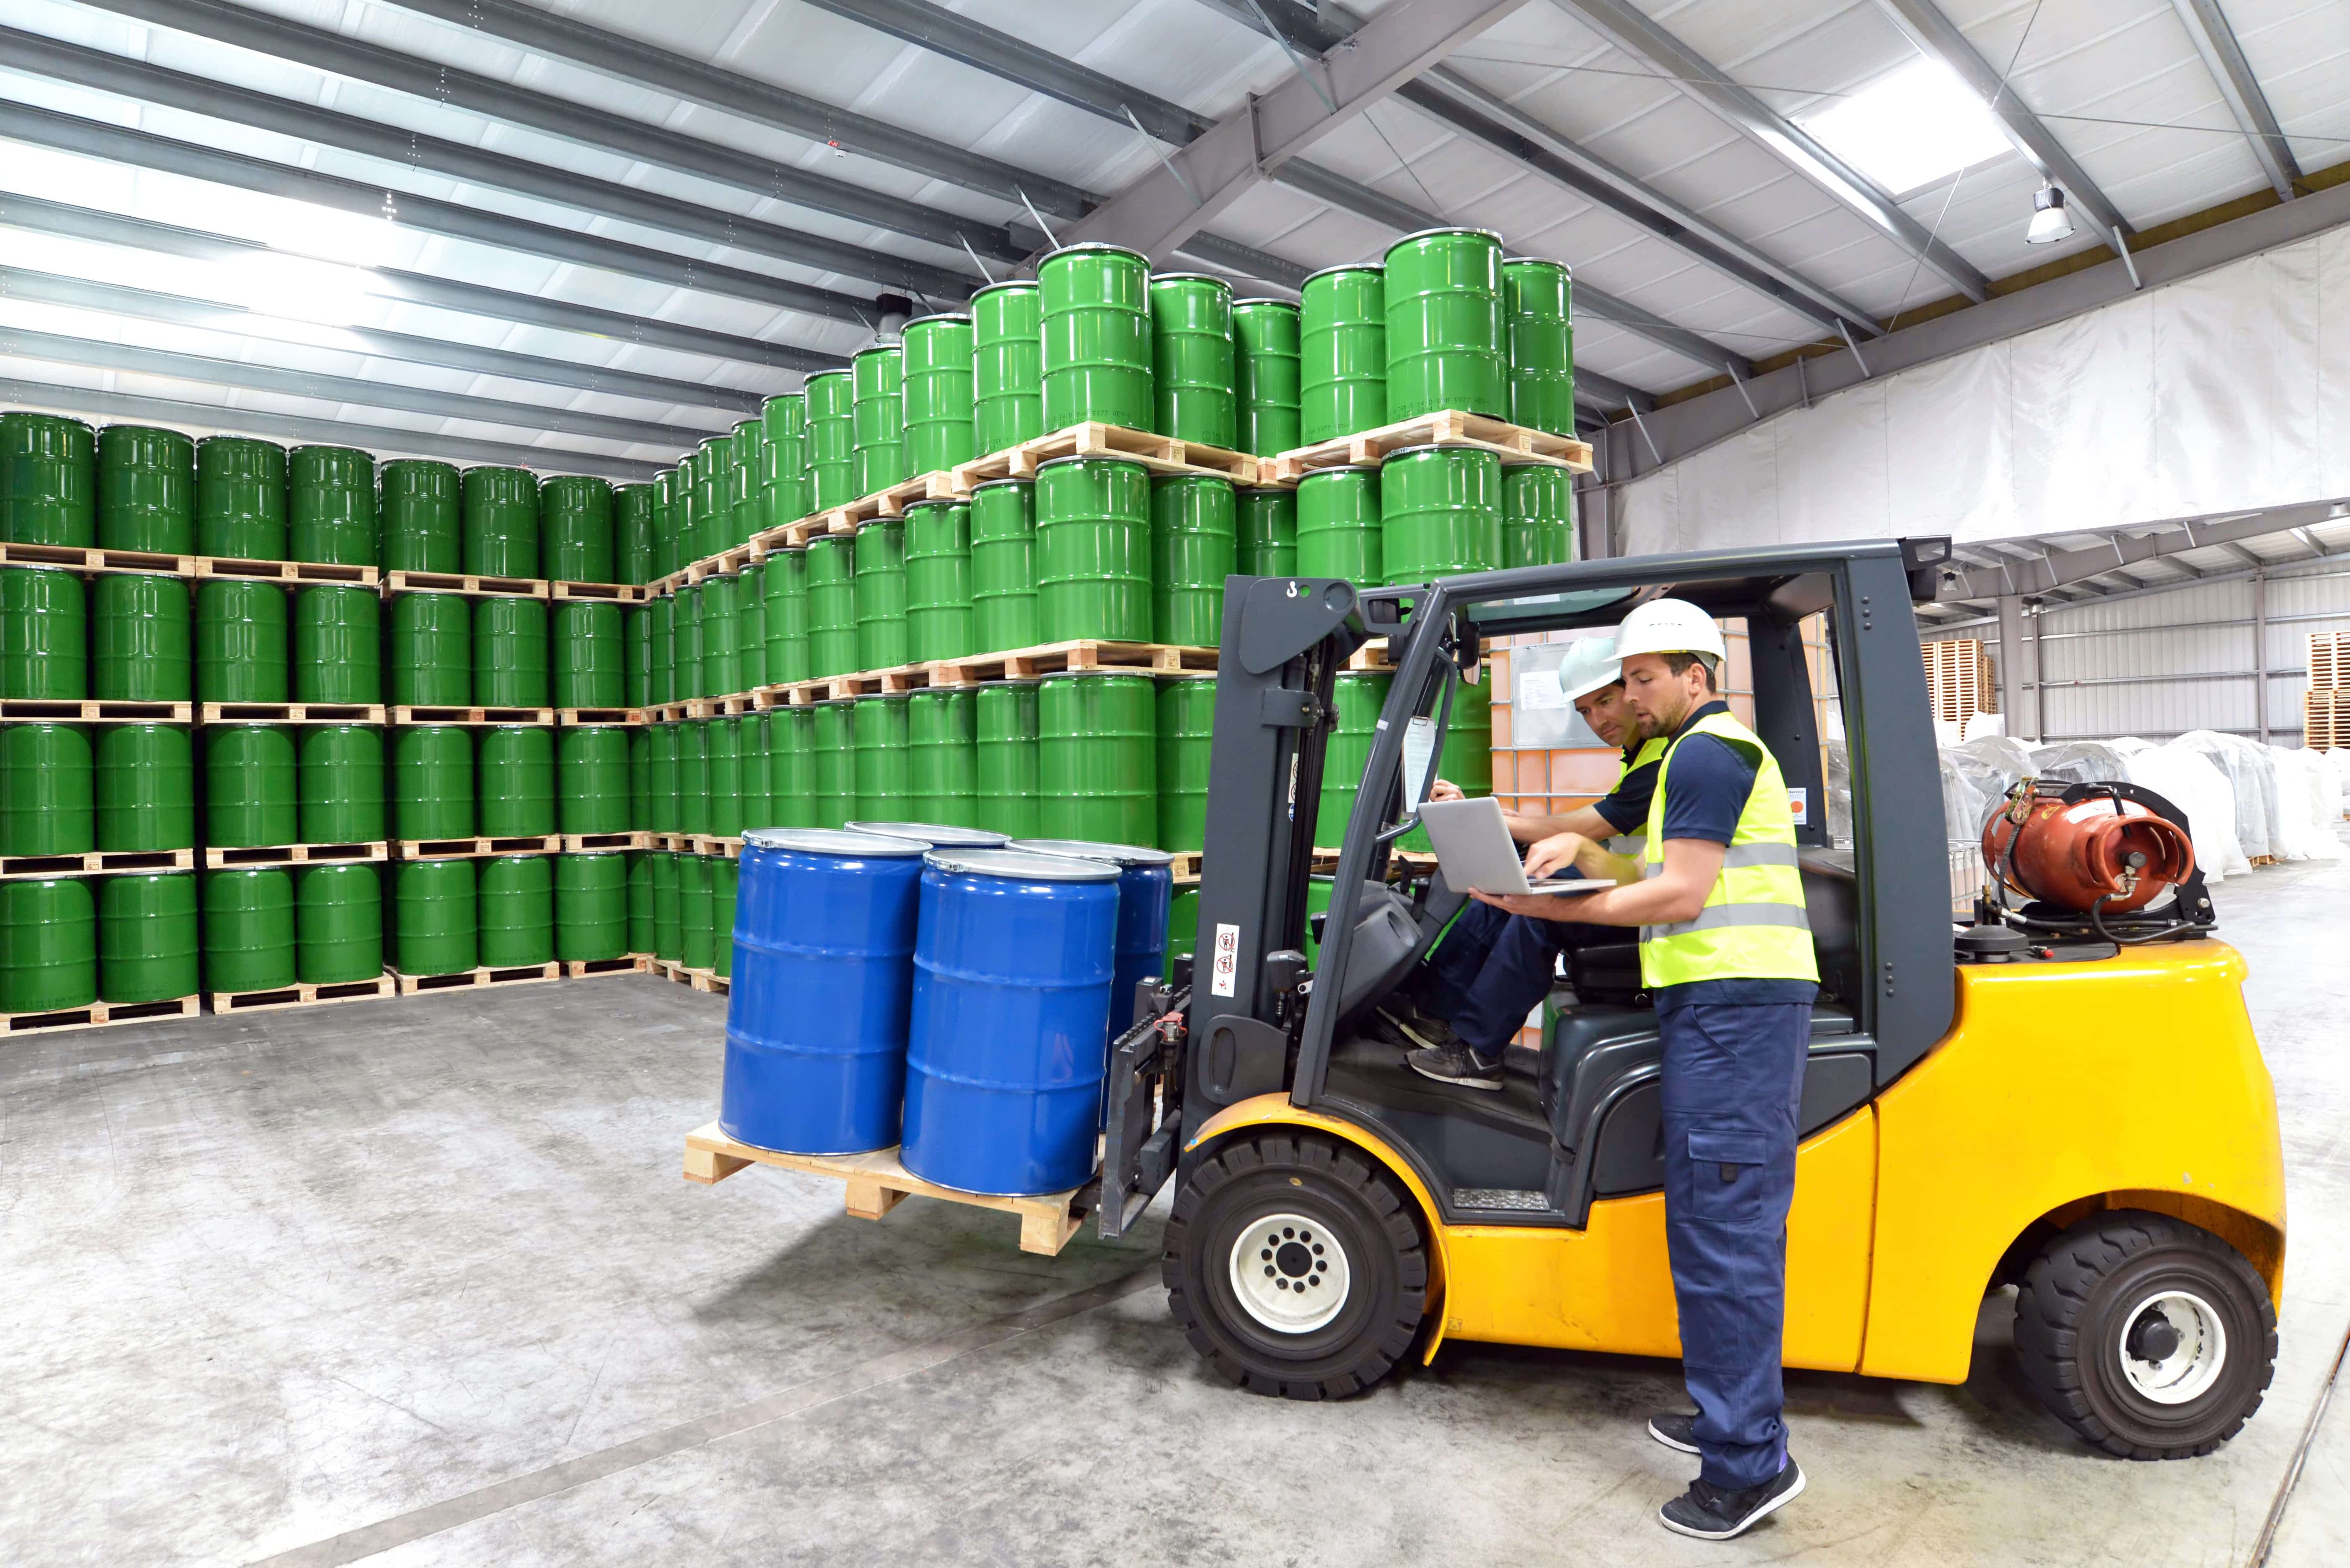 How To Identify Spill Risk When Storing Class 3 Flammable Liquids